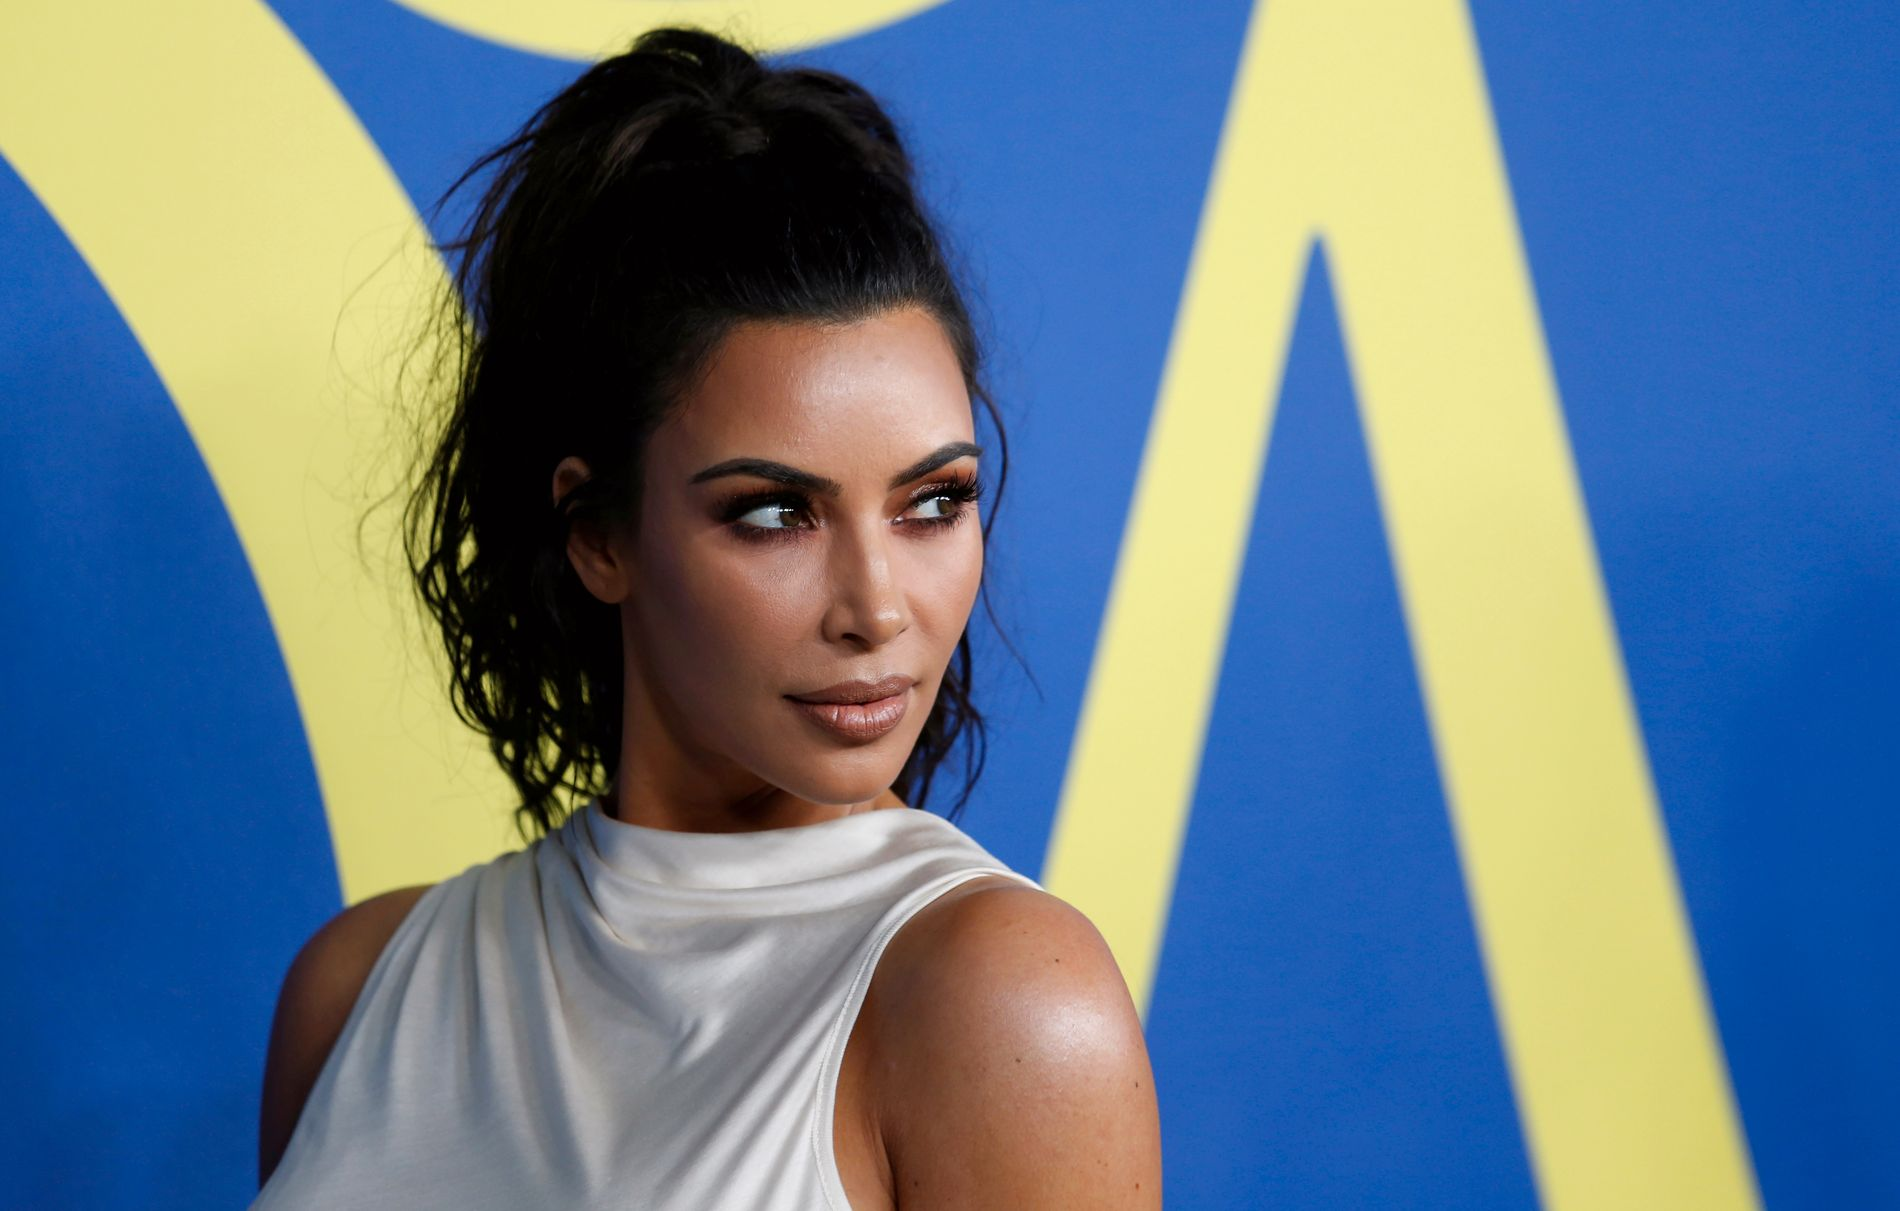 BEKYMRET: Kim Kardashian West er bekymret for søsteren Khloé, og det gir hun uttrykk for i kommende episode av «Keeping Up with the Kardashians».